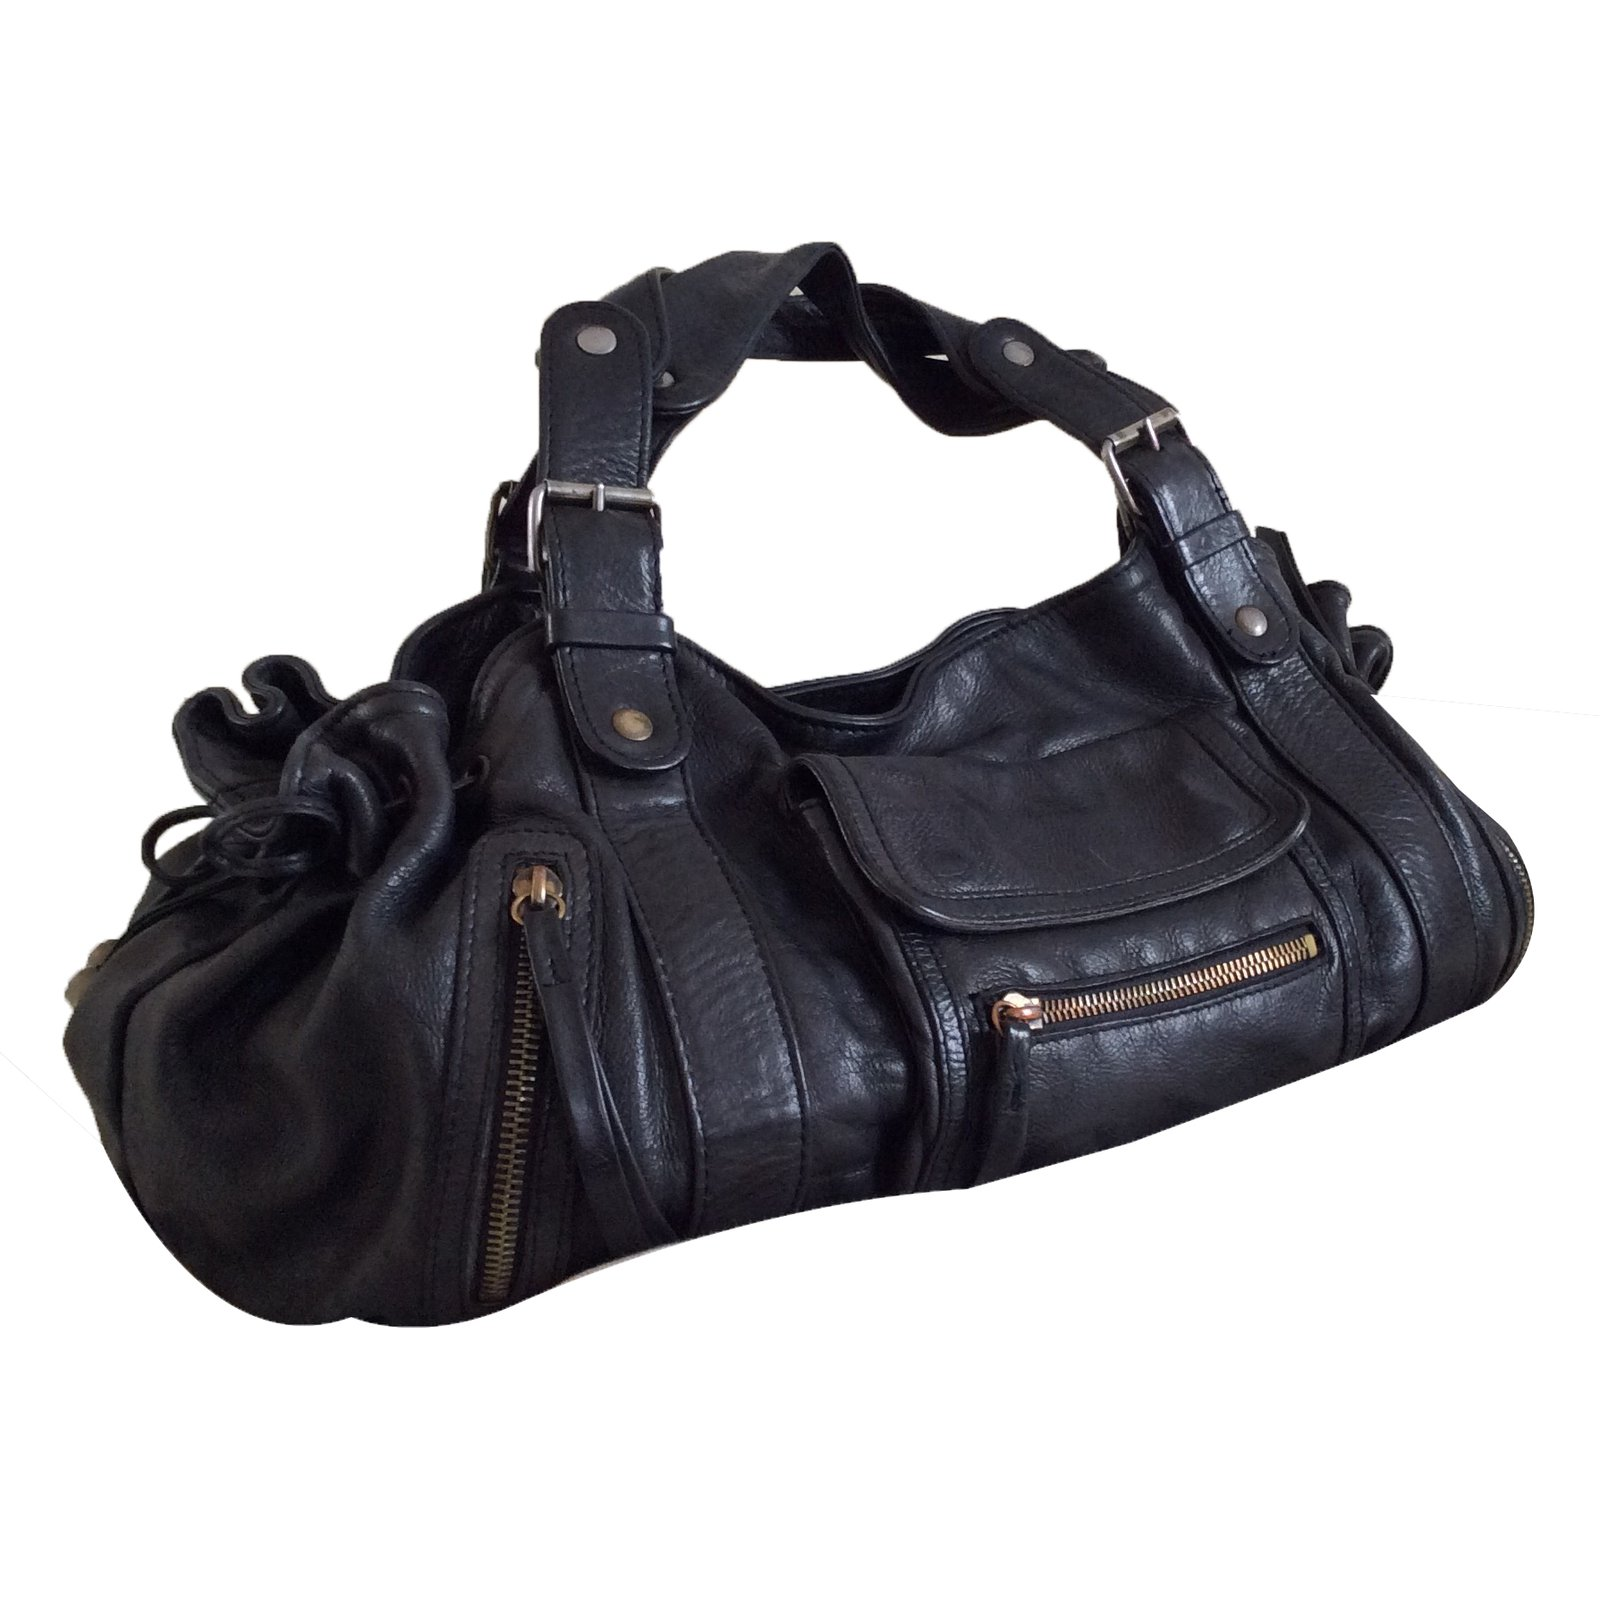 313d37241e Gerard Darel Handbags Handbags Leather Black ref.36428 - Joli Closet